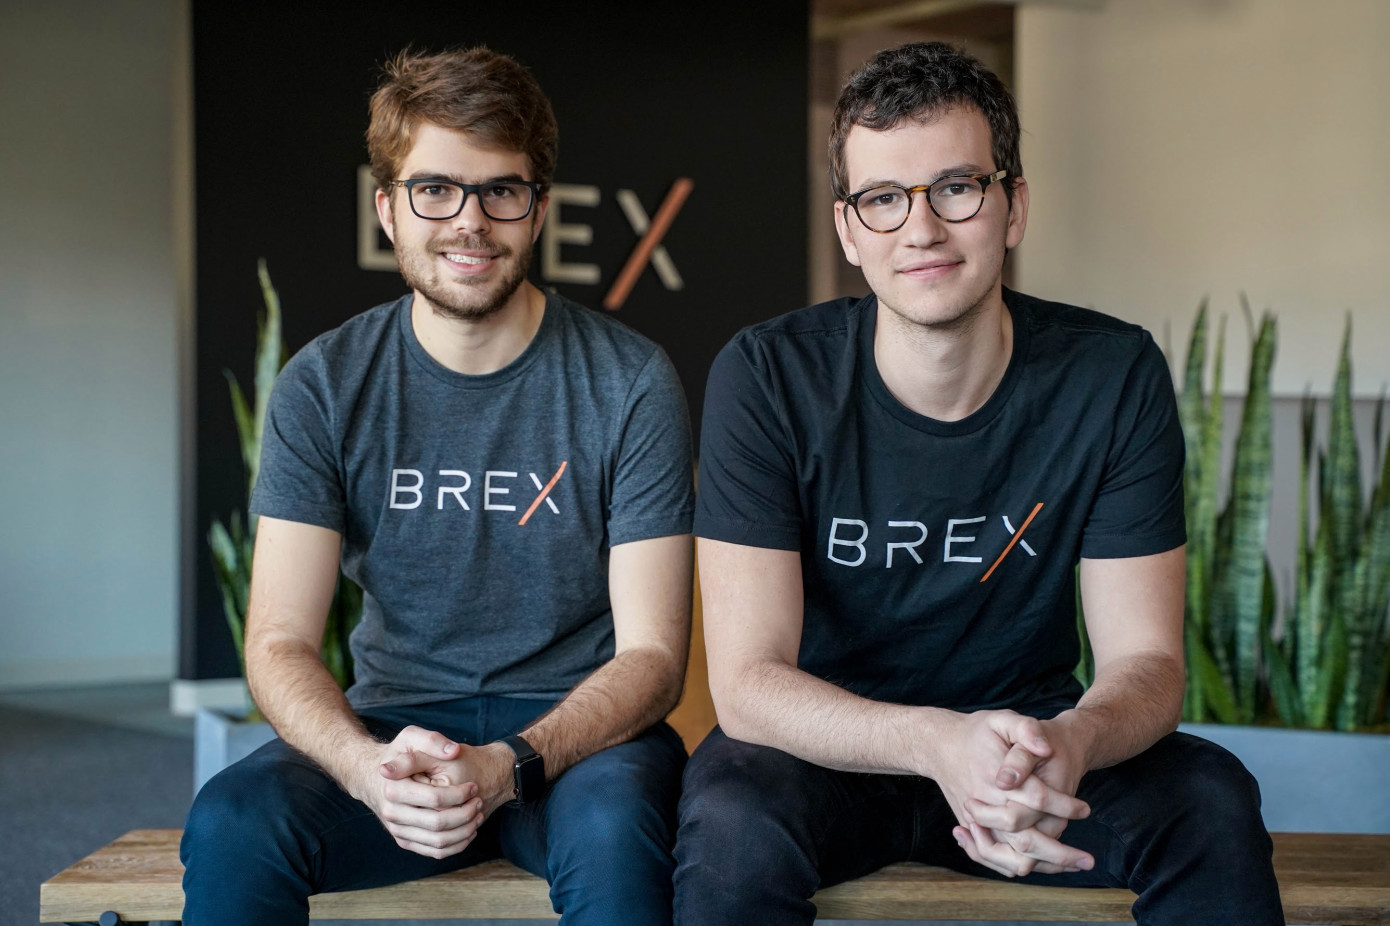 Less than 1 year after launching its corporate card for startups, Brex eyes $2B valuation